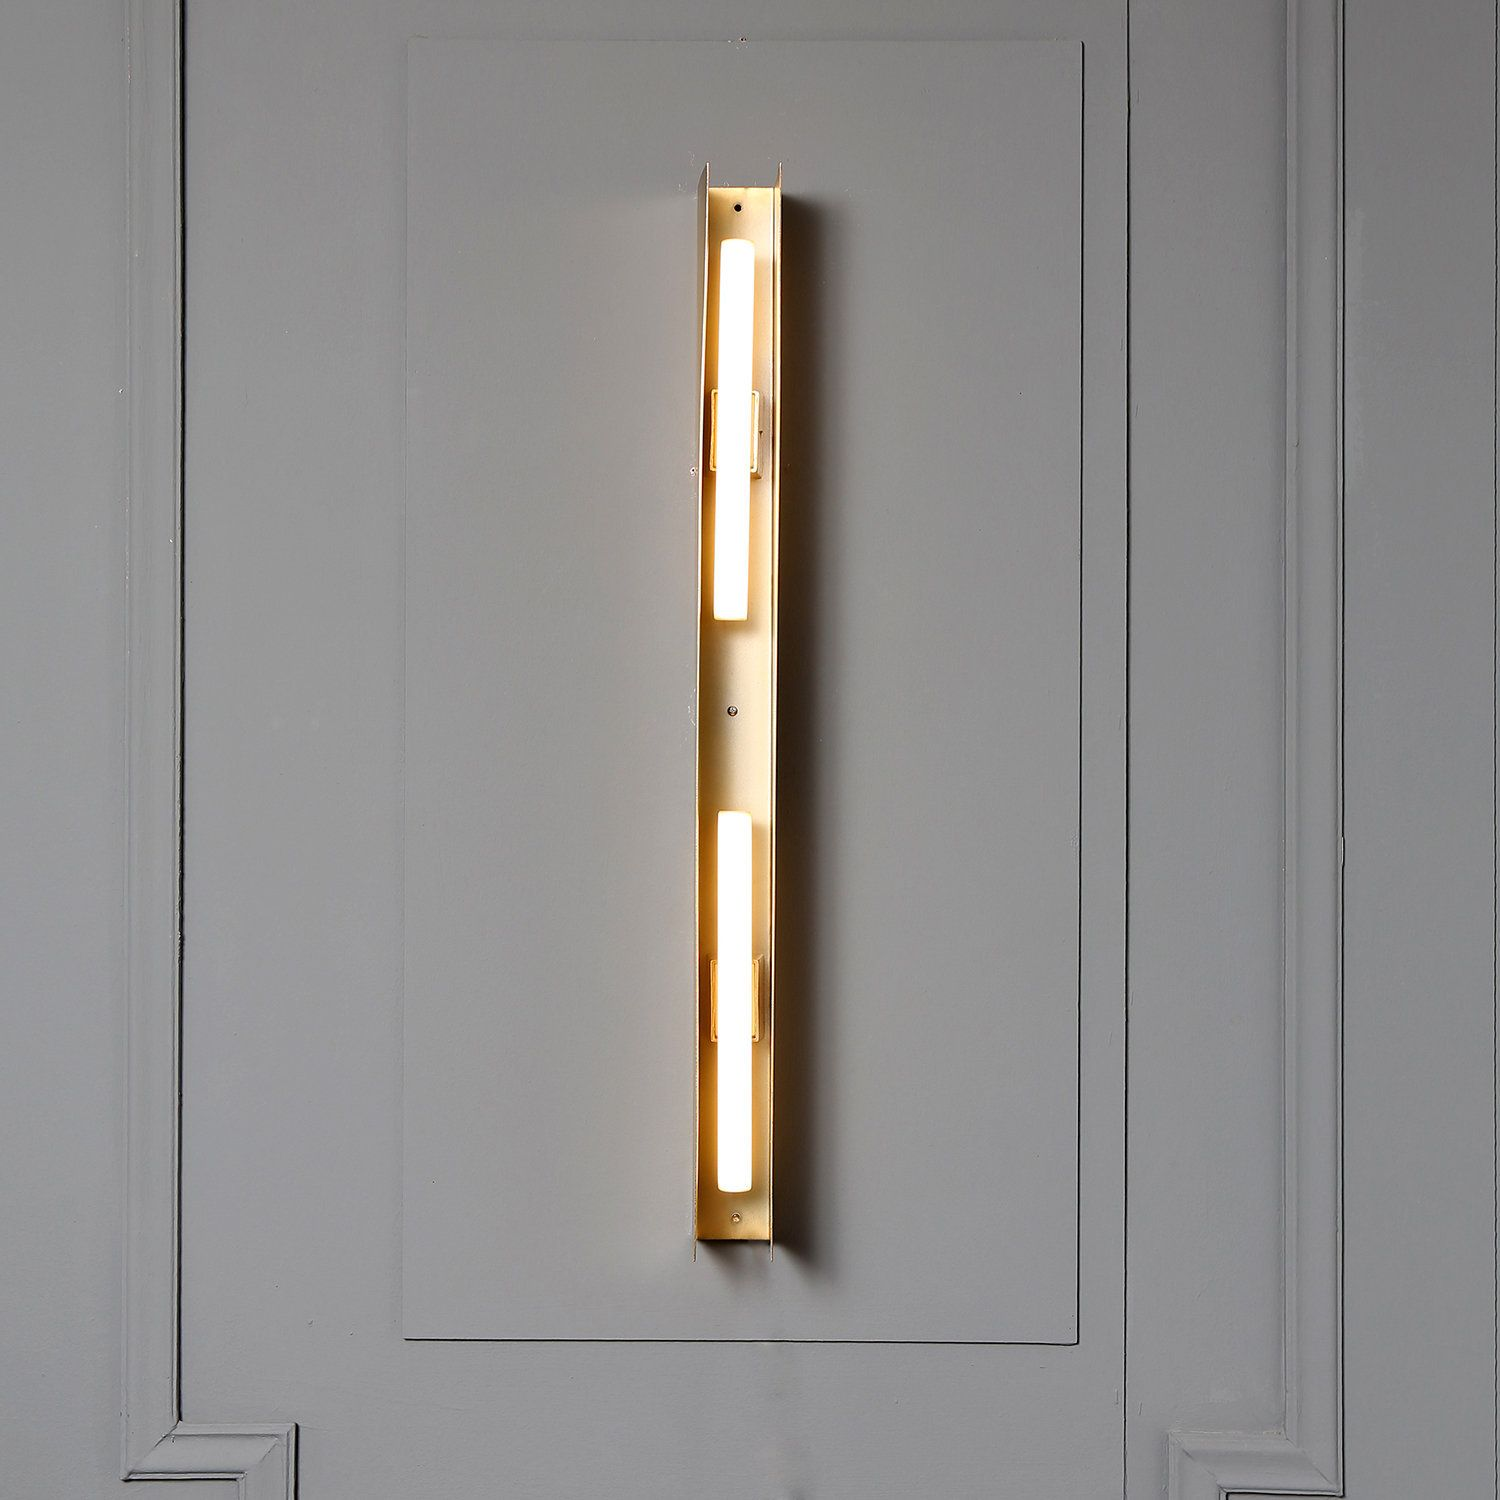 Antique Brass Led Down Light Fixture Aluminum Suspenders Led Wall Lighting Decorative Hanging Linear Wall Sconce